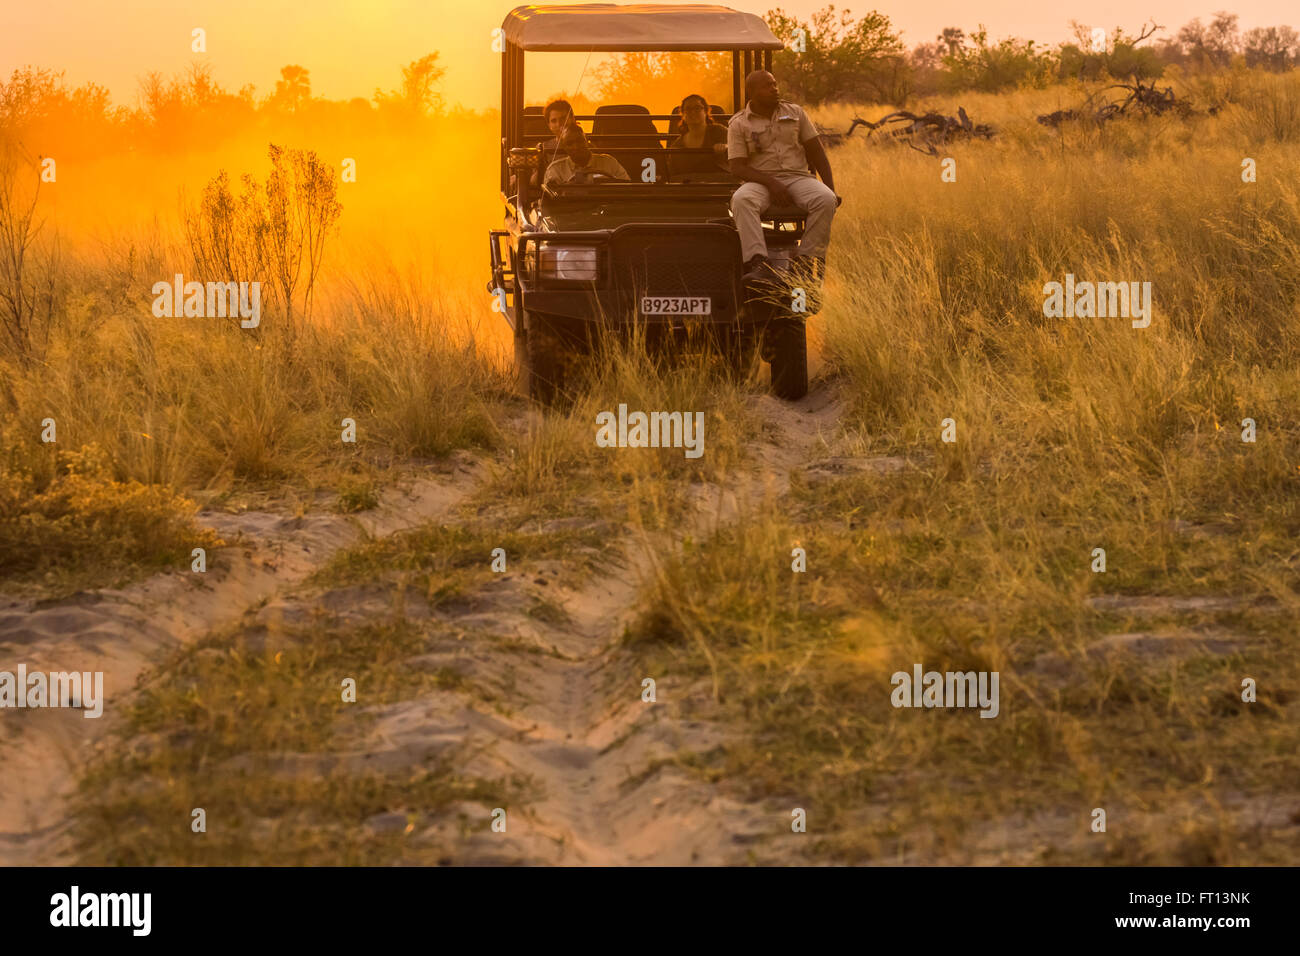 Safari jeep with wildlife guide-spotter on a game drive at sunset, Sandibe Camp, by the Moremi Game Reserve, Okavango - Stock Image